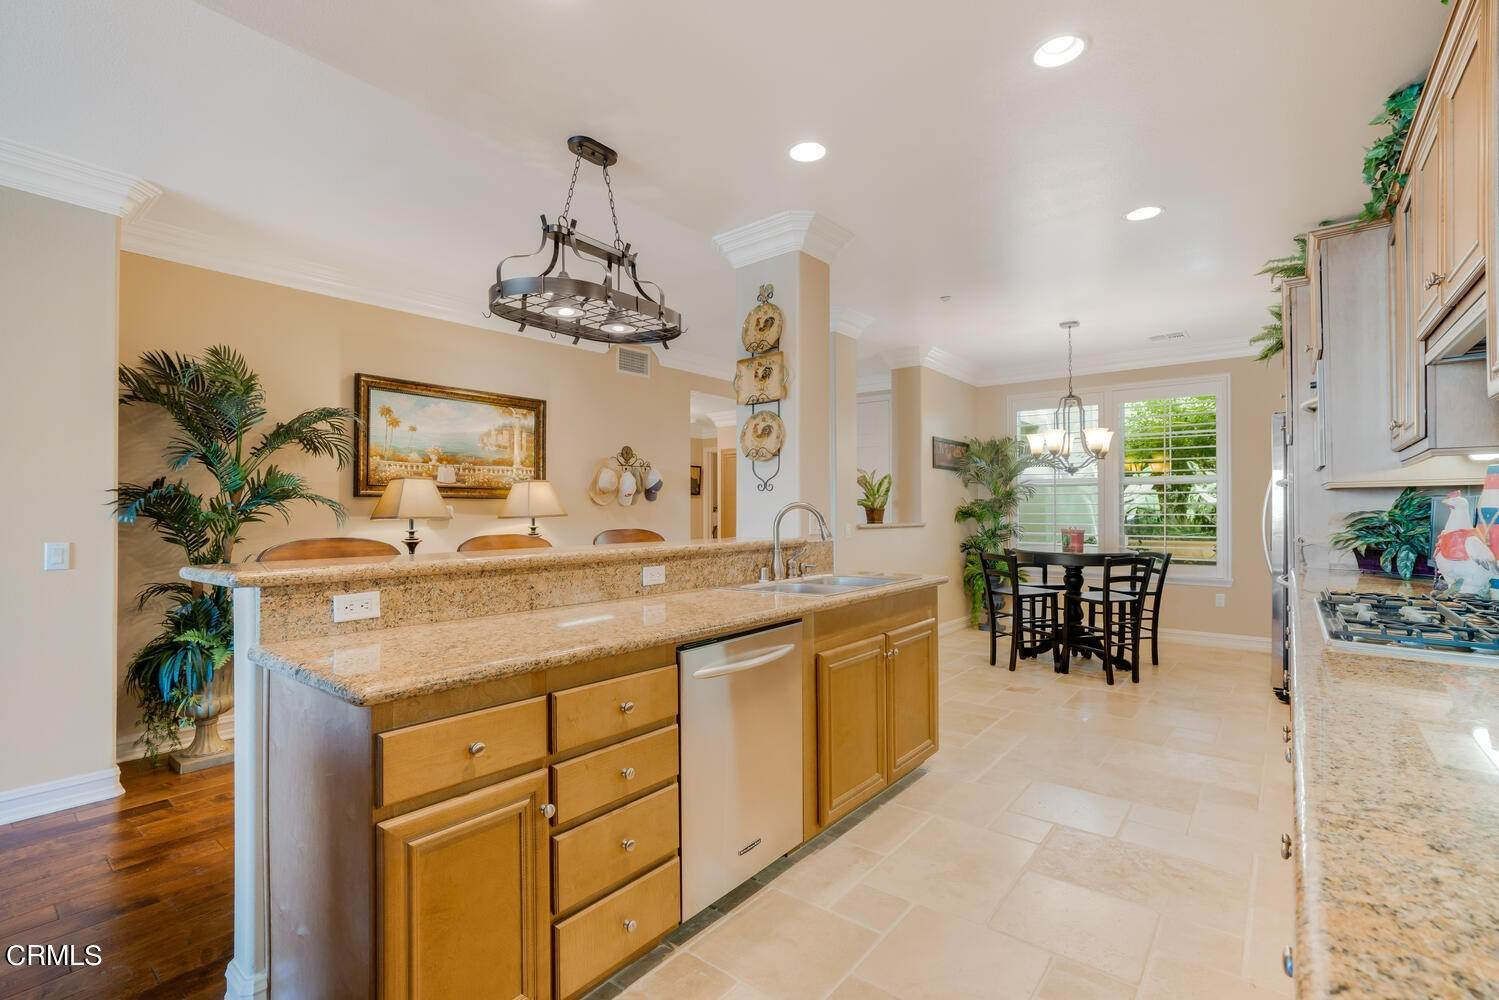 8. Condominiums for Sale at 1405 Windshore Way Oxnard, California 93035 United States